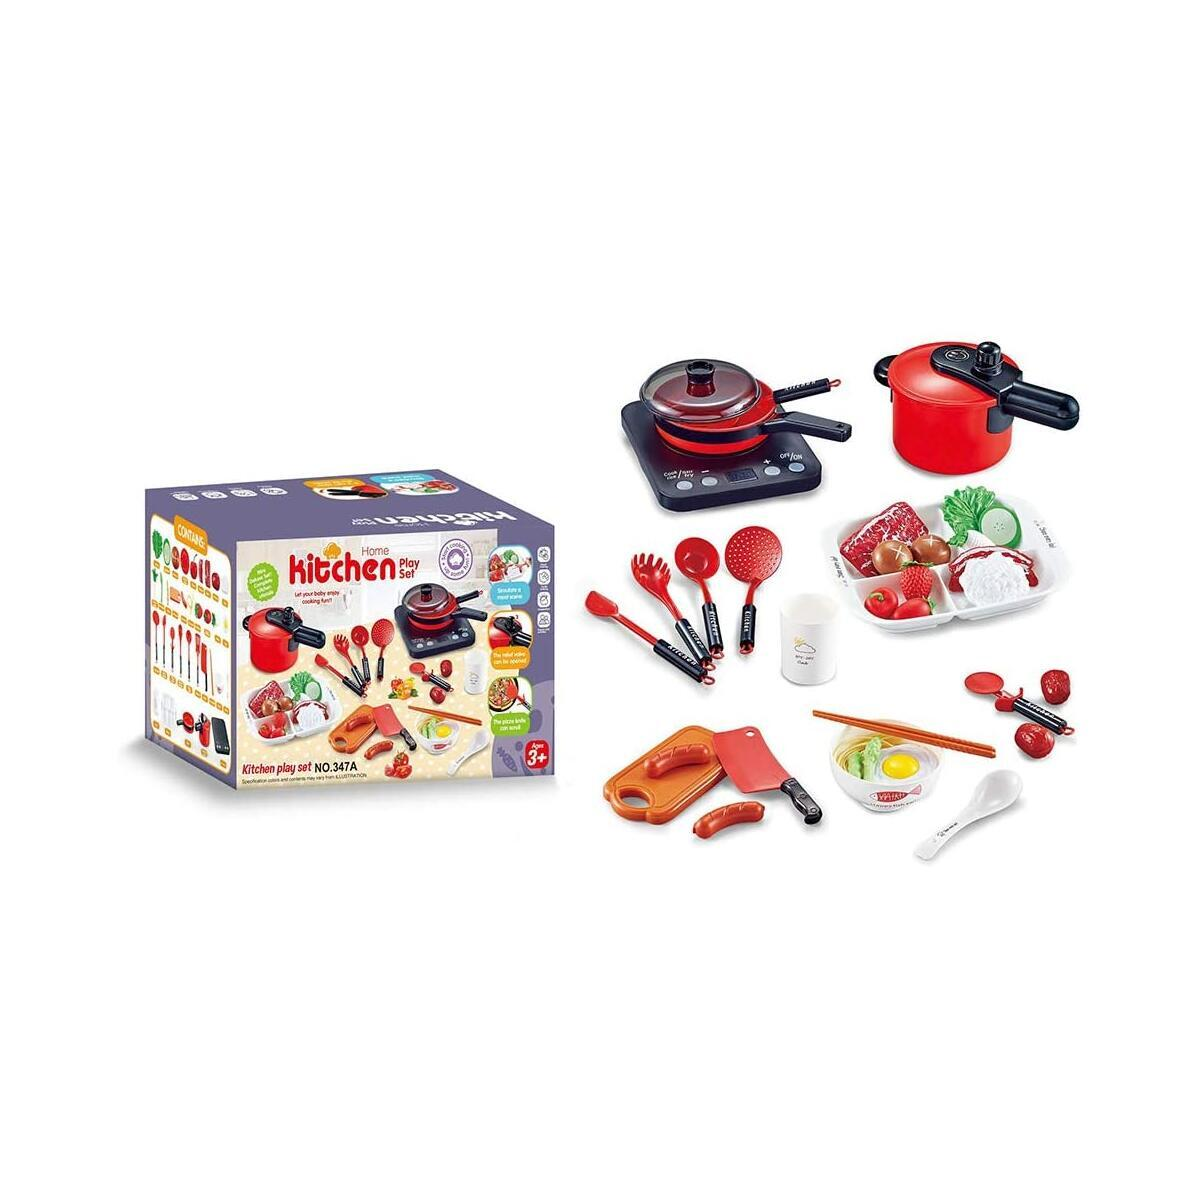 Kids Kitchen Playset - SOWOW Toddler Kitchen Playset plastic game kitchen Pretend Cooking Toys Set children chef kitchen pretend game Kitchen Playset for Kids Baby Infant Role Play Educational Toy